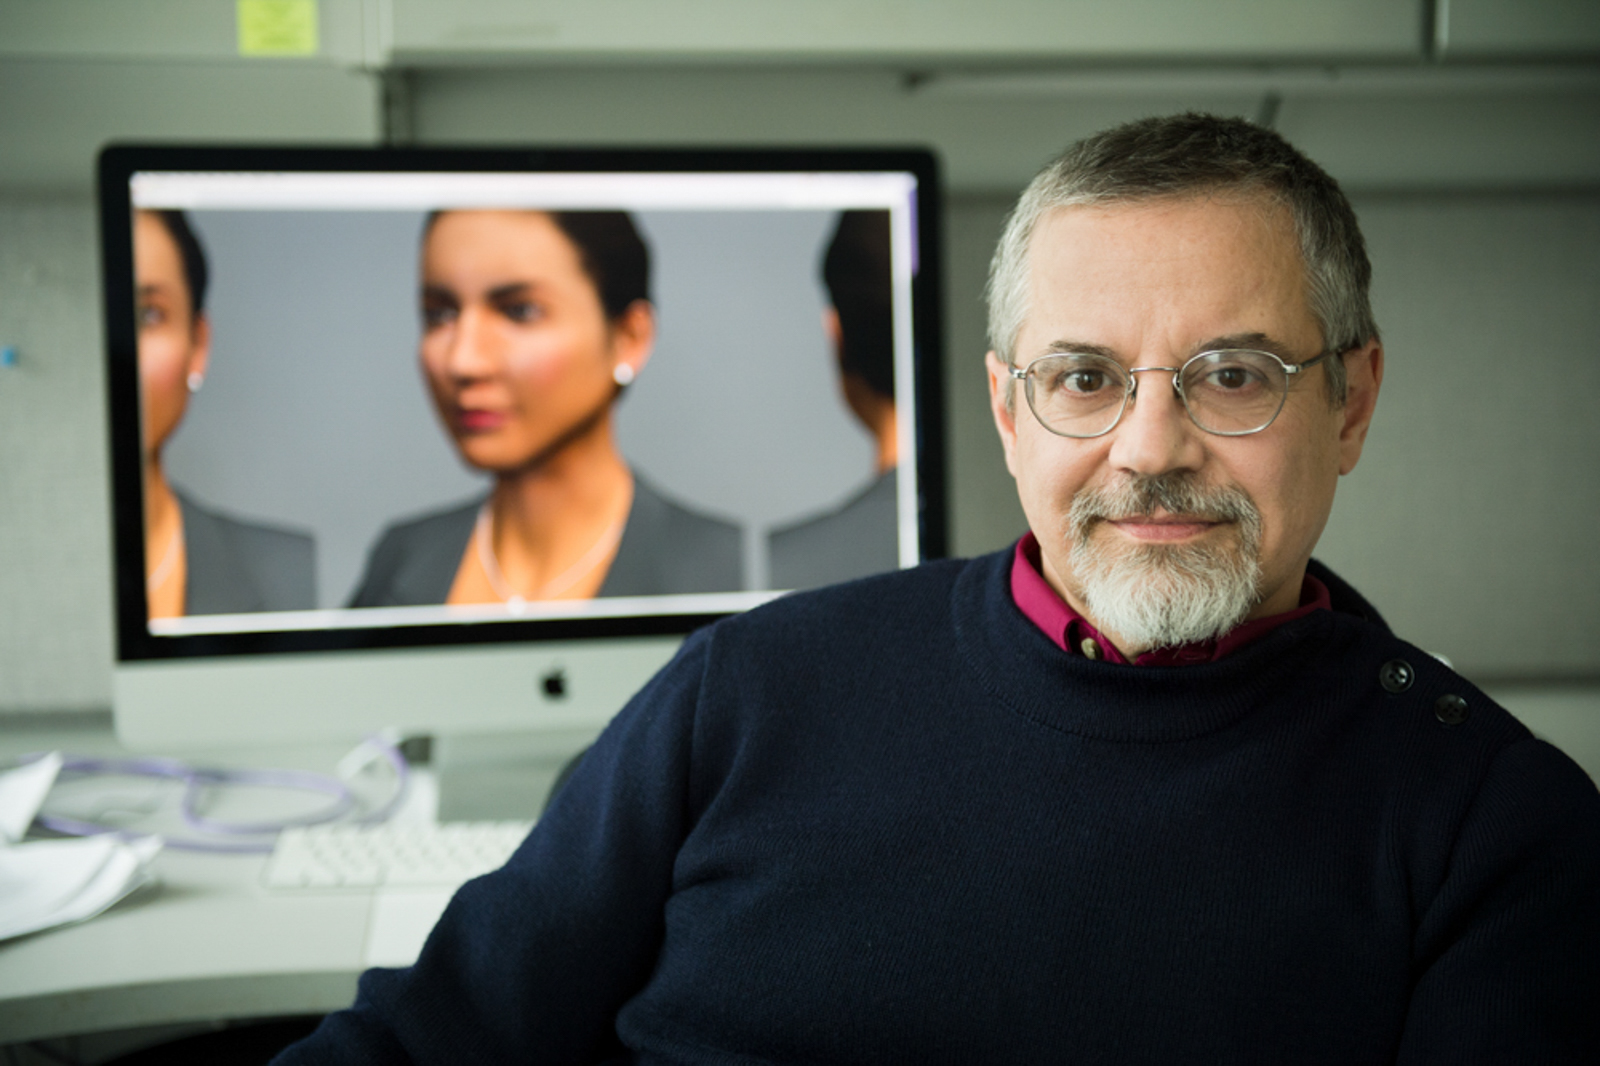 Portrait of professor with his work shown in a computer in the background